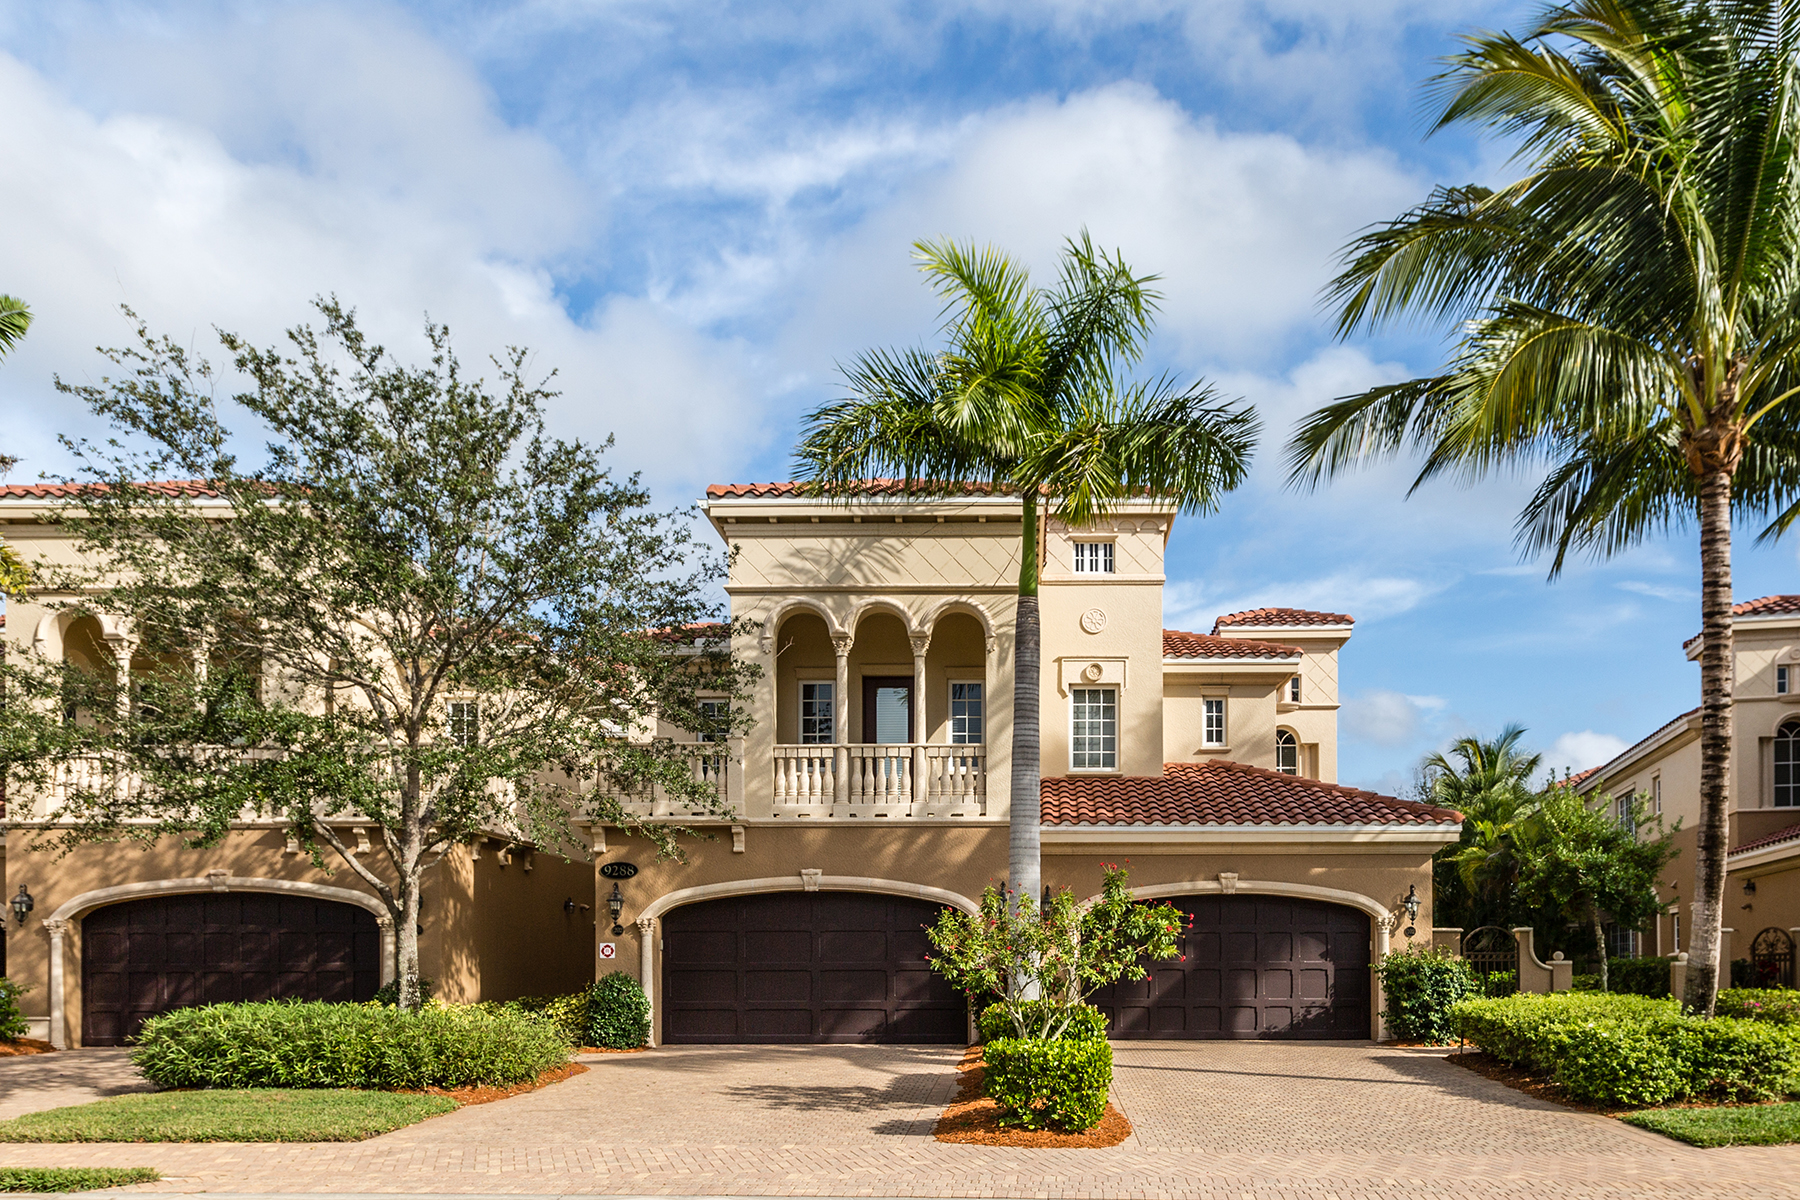 Condominium for Sale at MENAGGIO 9288 Menaggio Ct 102 Naples, Florida, 34114 United States